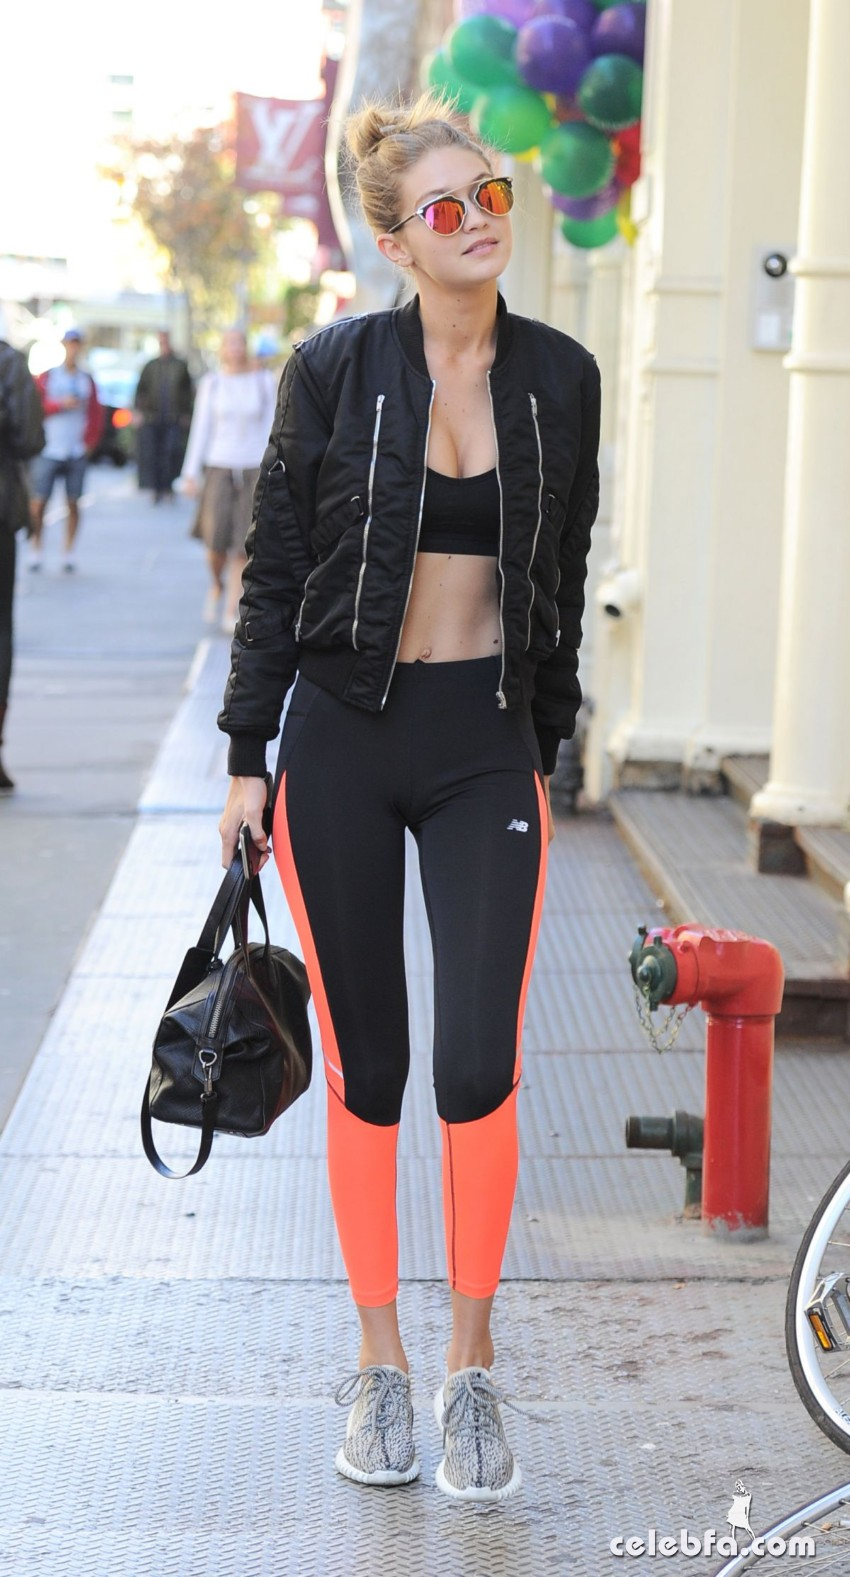 gigi-hadid-arrives-at-her-hotel-in-new-york (5)